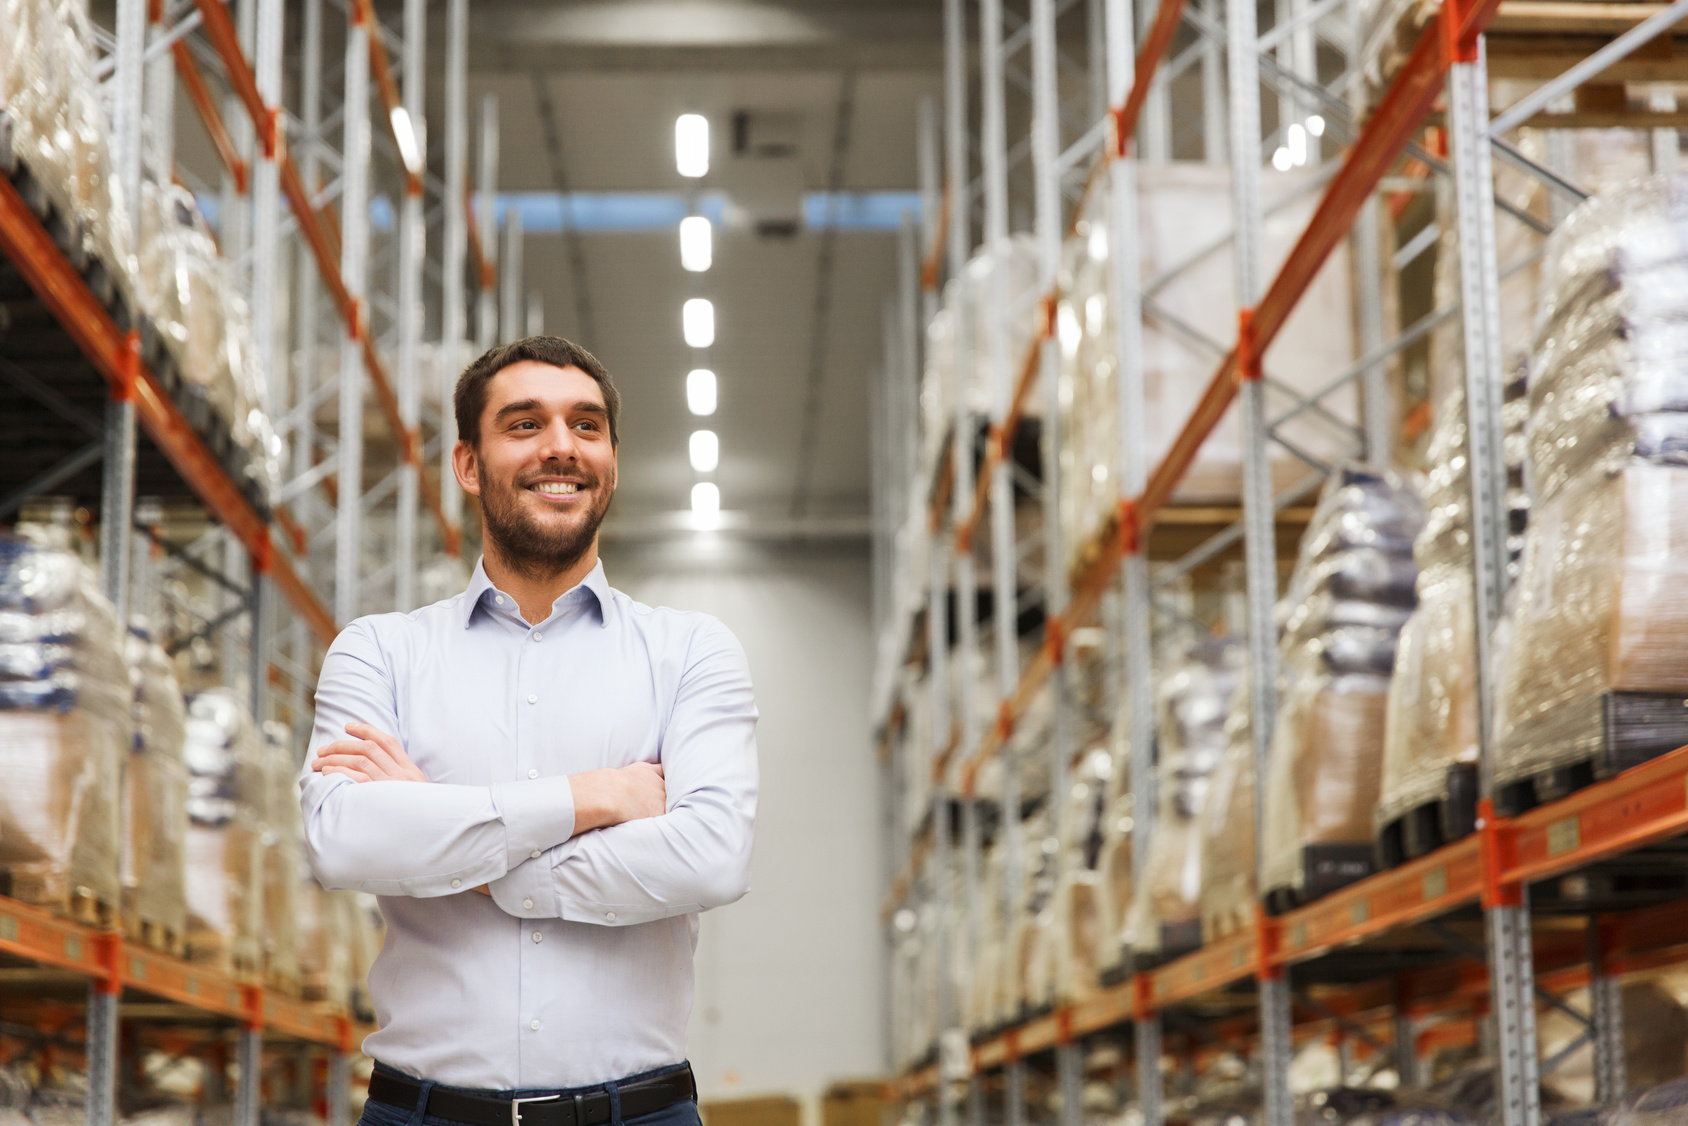 safe warehouse is essential for trade